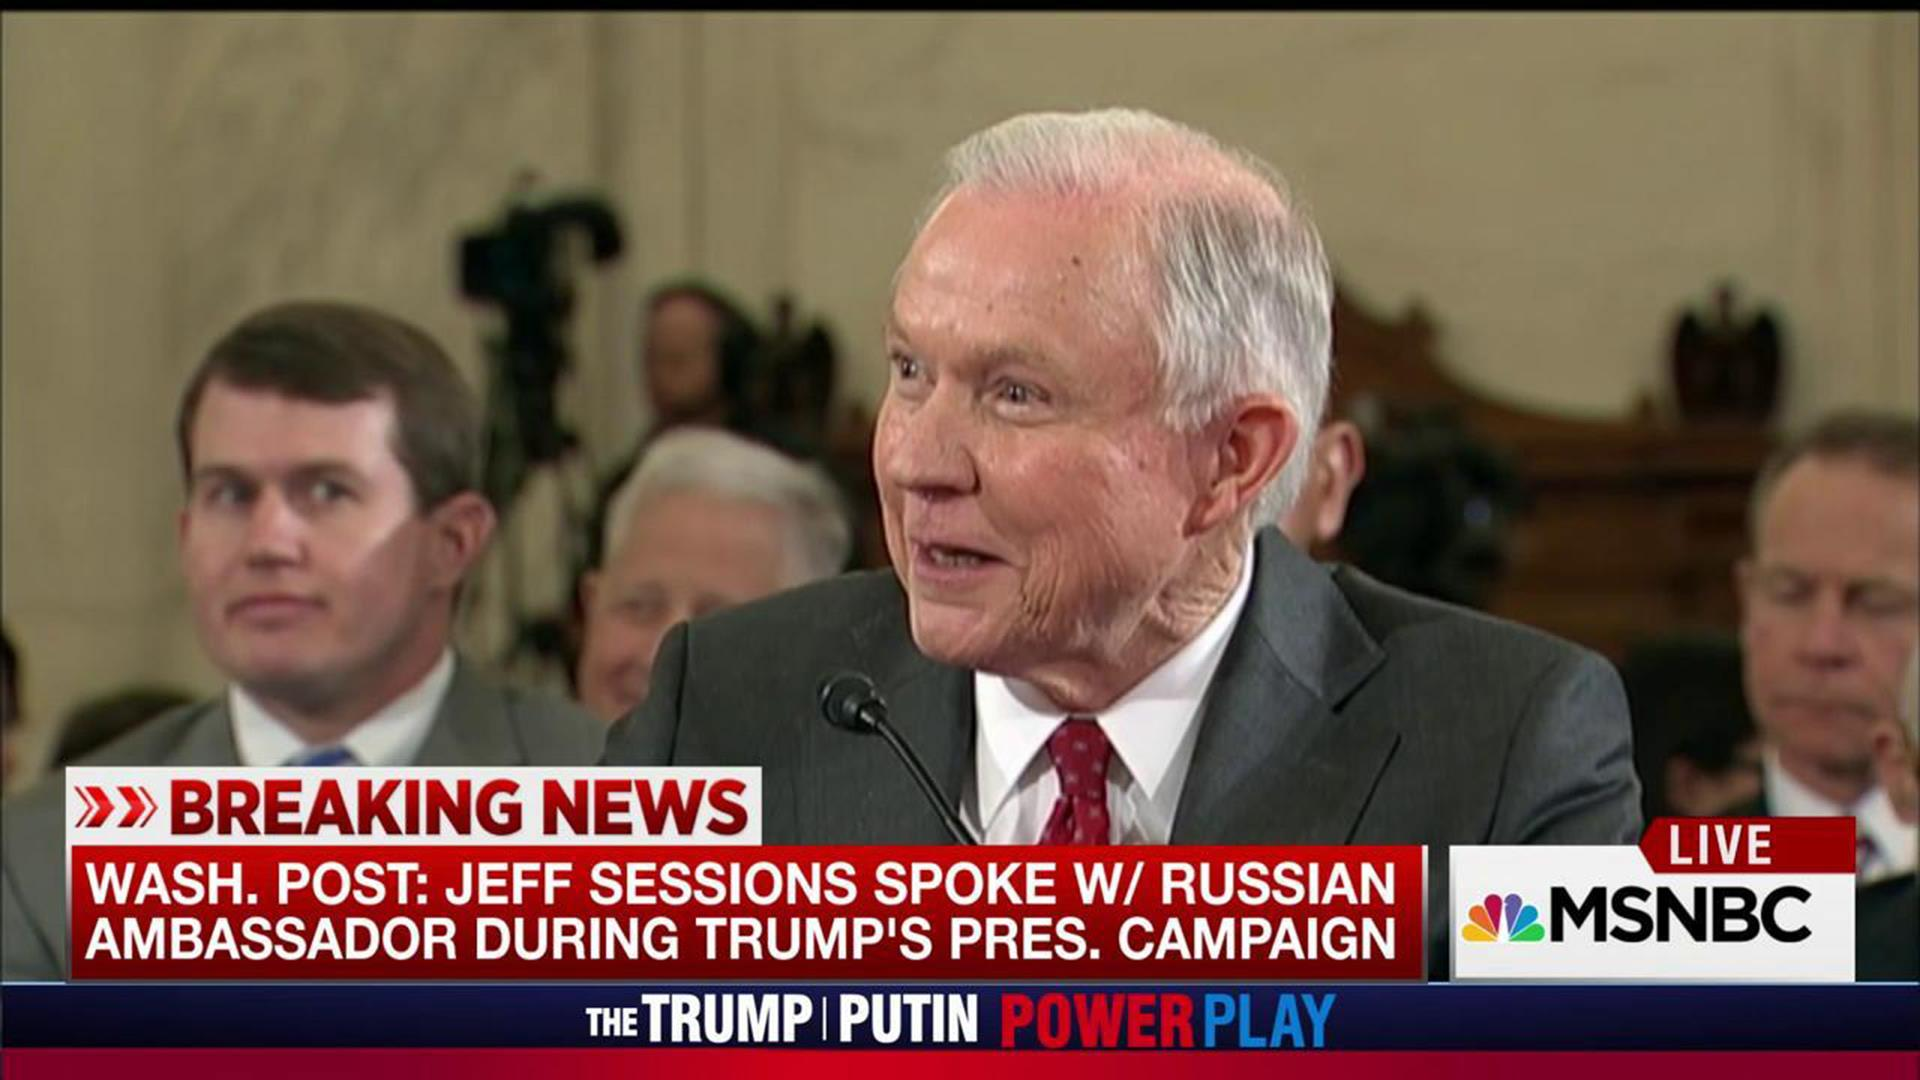 WP: Trump camp's Sessions, Russian amb spoke